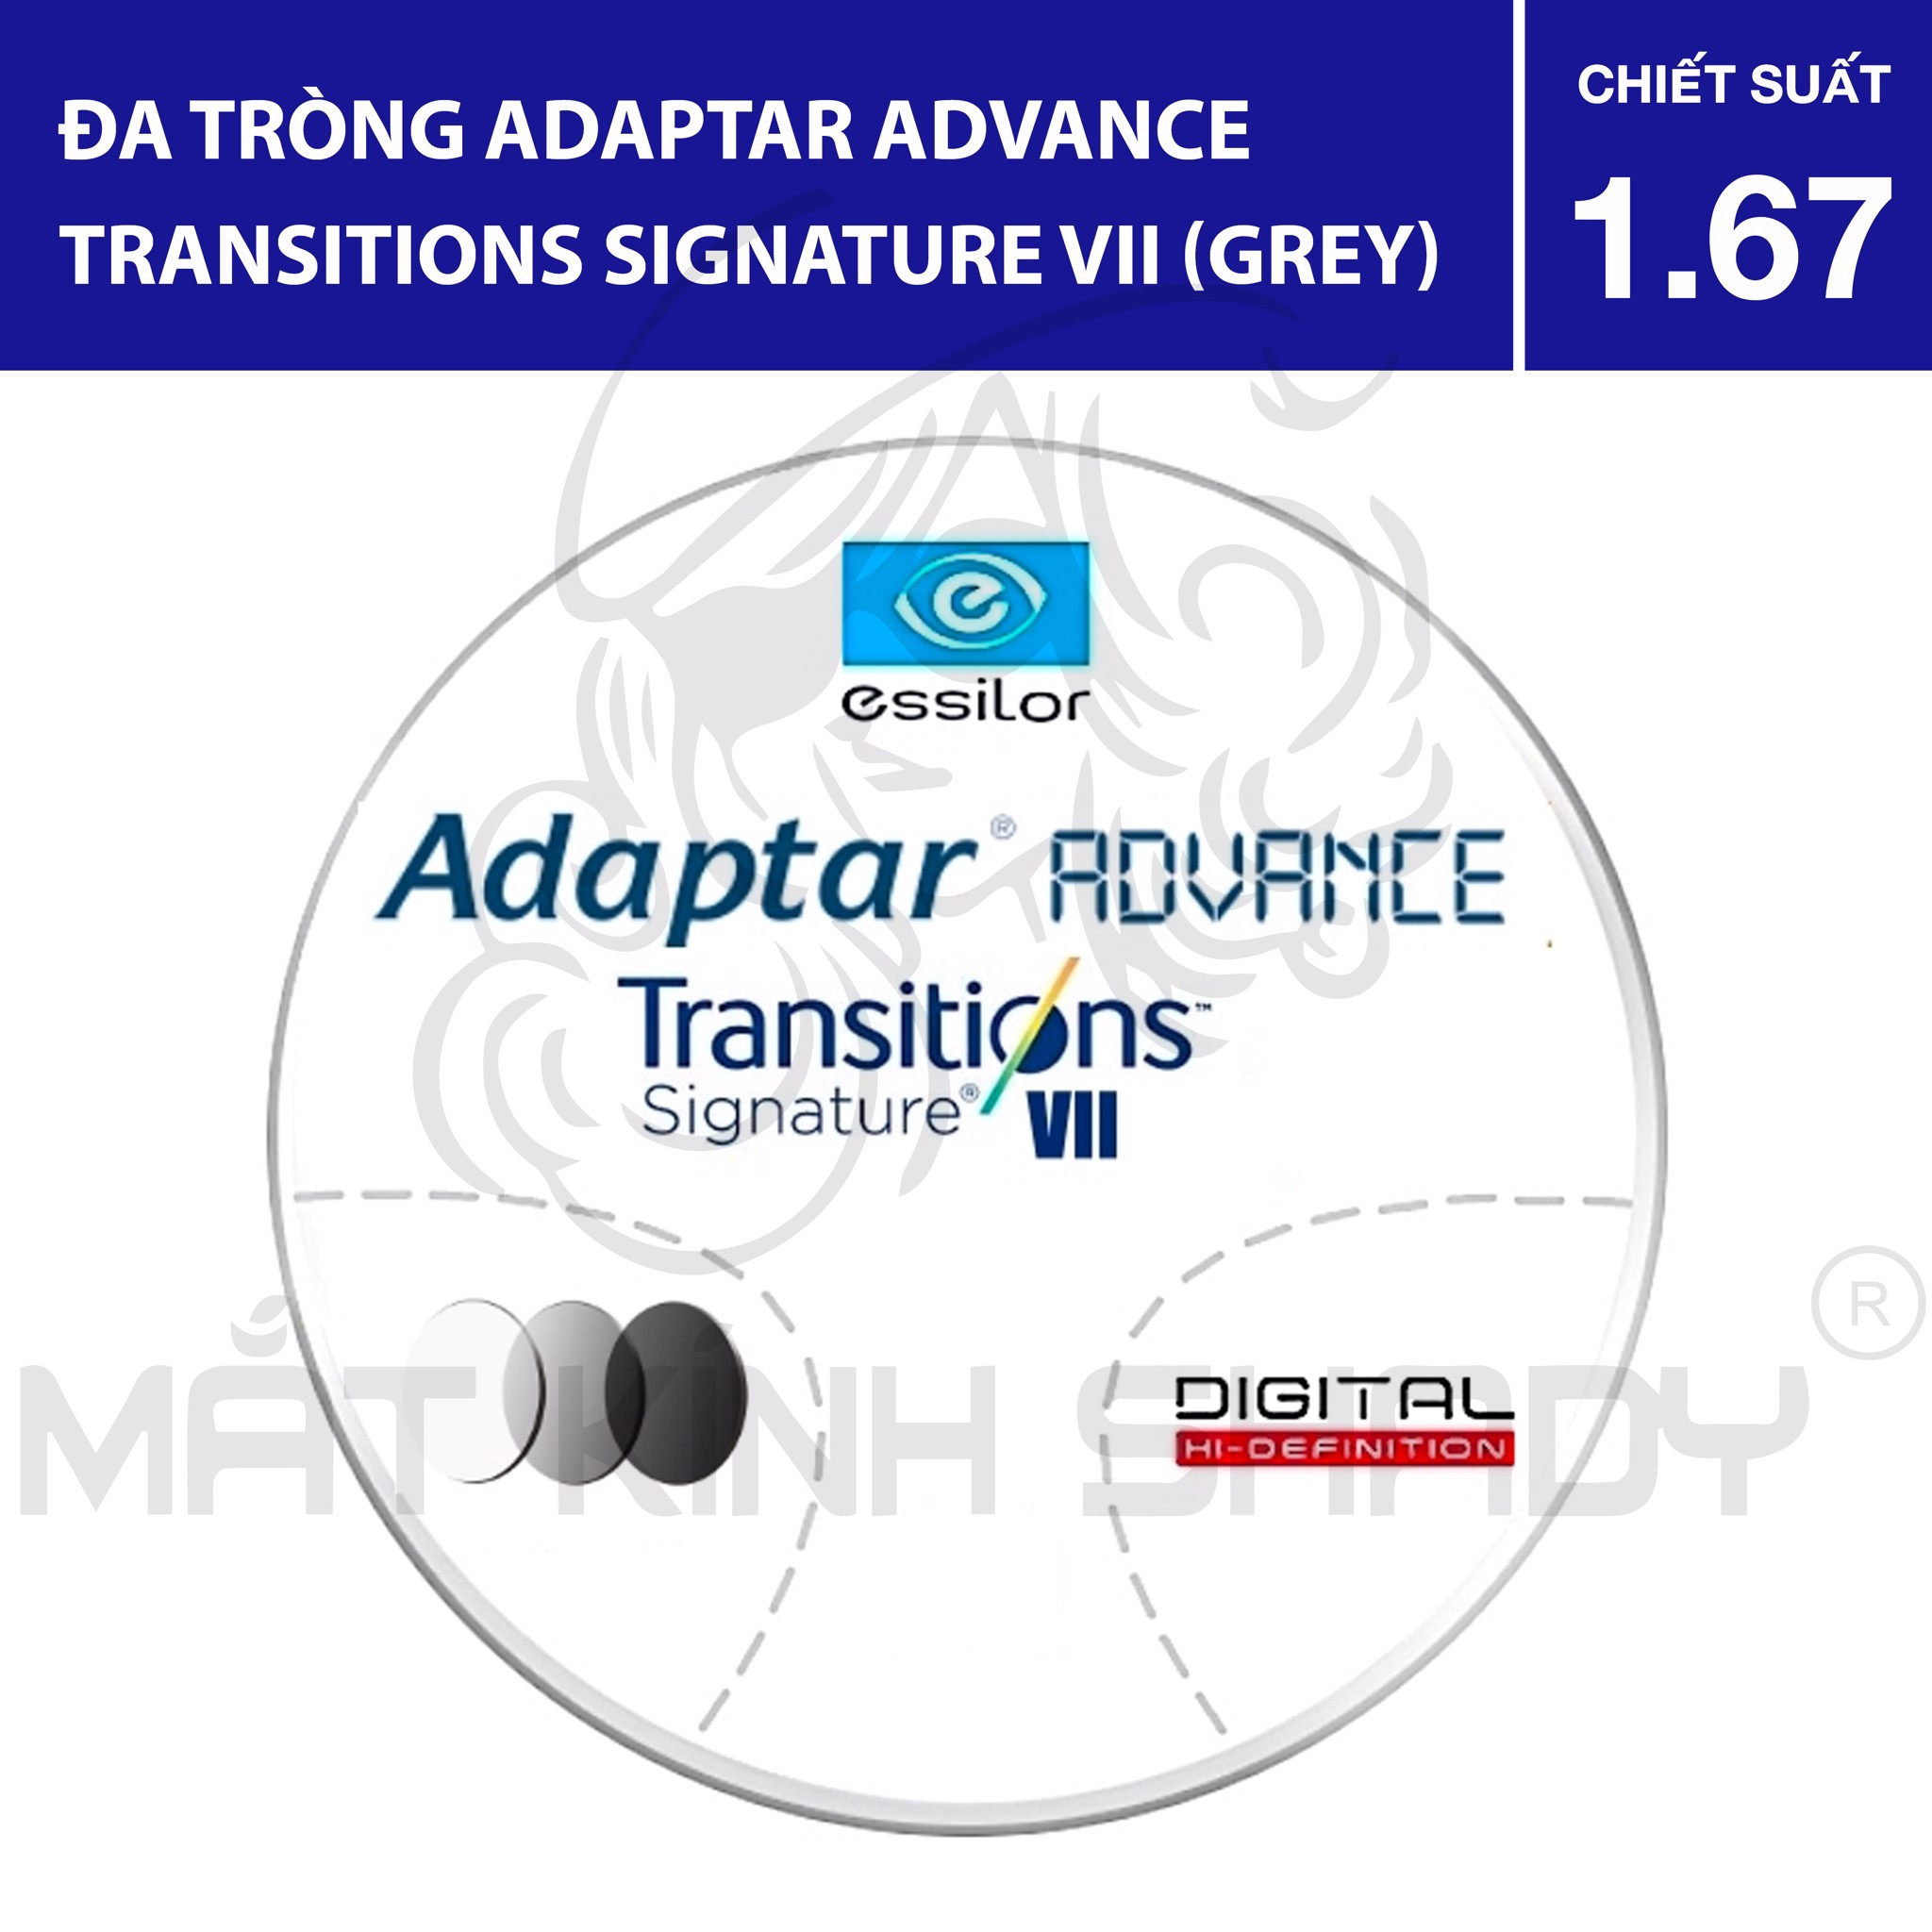 Đa tròng Adaptar Advance Transitions VII (Grey) - 1.67